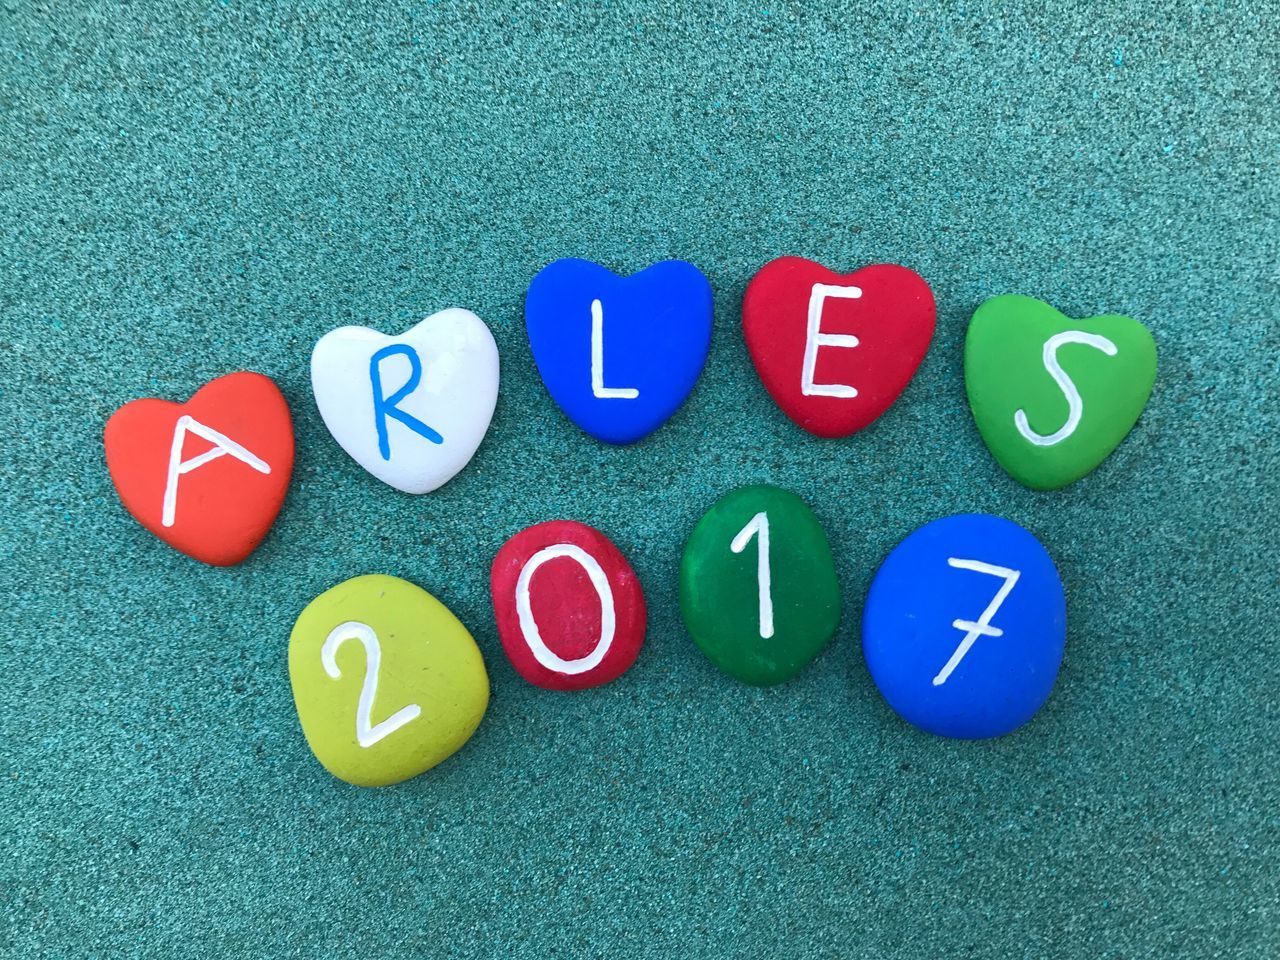 BYOPaper! Arles Arles2017 France Contest Communication Text Stones ArtWork Yournameonstones 2017